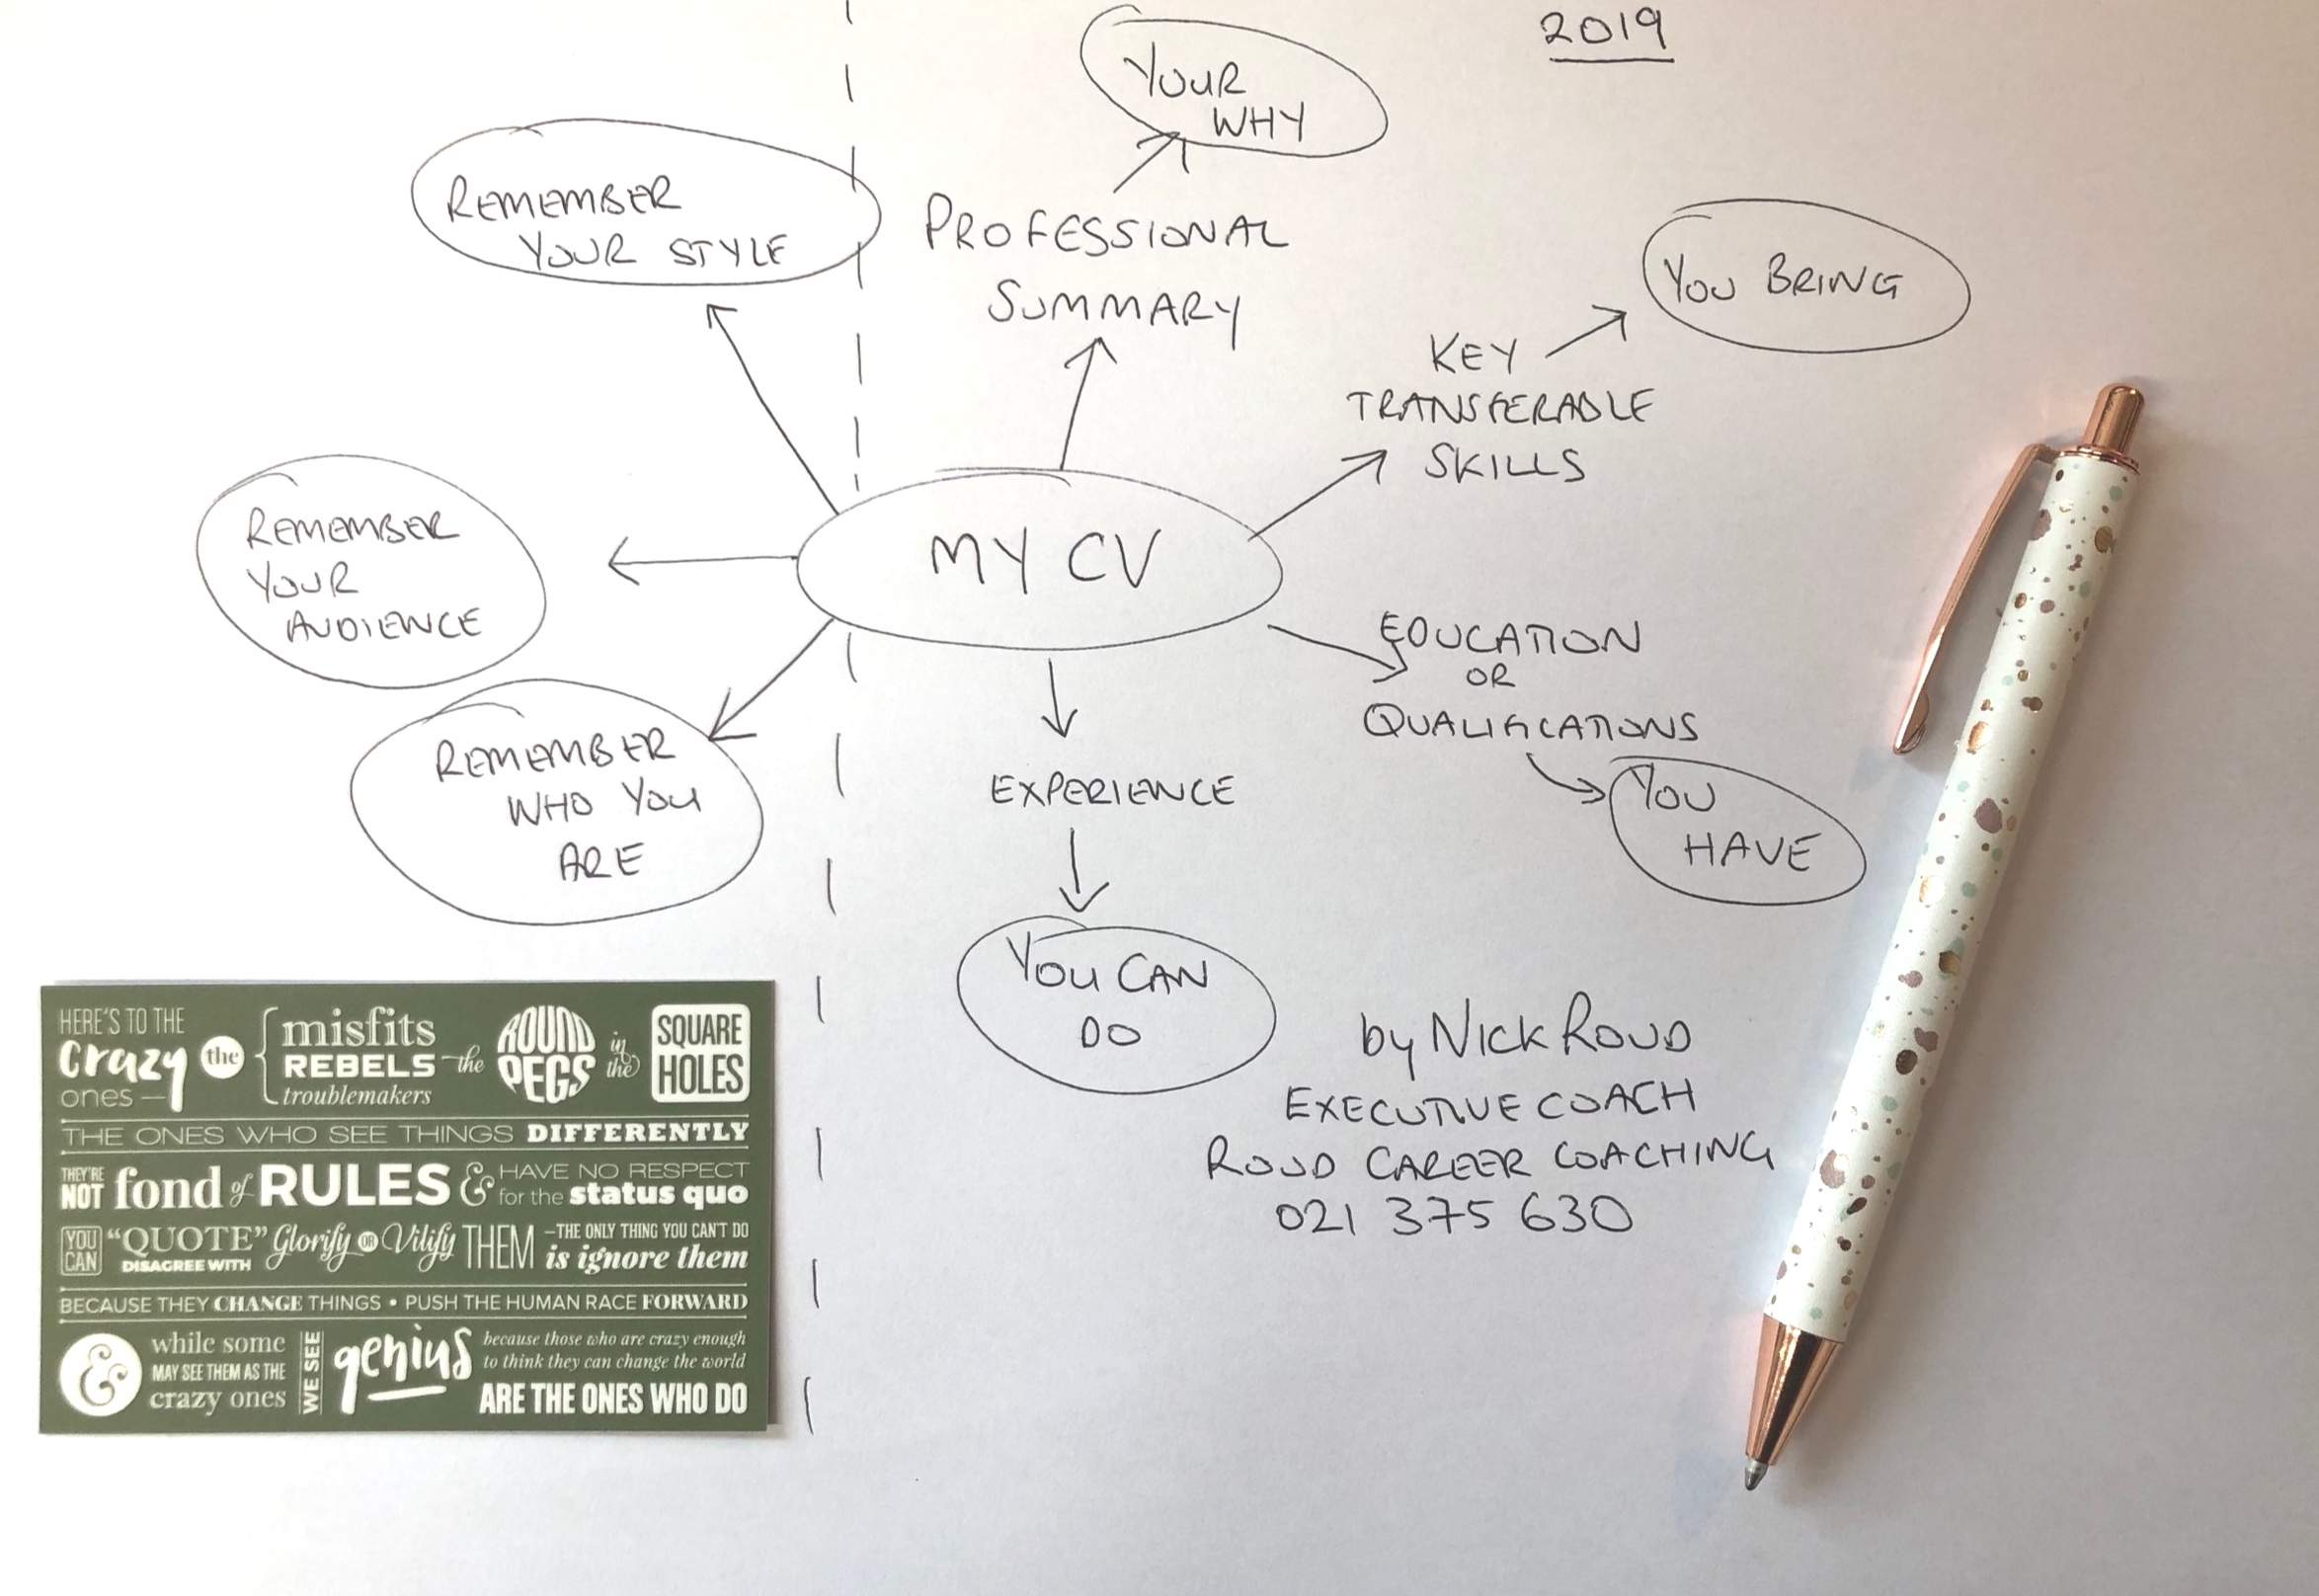 Creating your very own CV/Resume - it doesn't need to be daunting, it should be fun. Get in touch with me if you need help.  Nick Roud Executive Coach. Roud Career Coaching 021375630